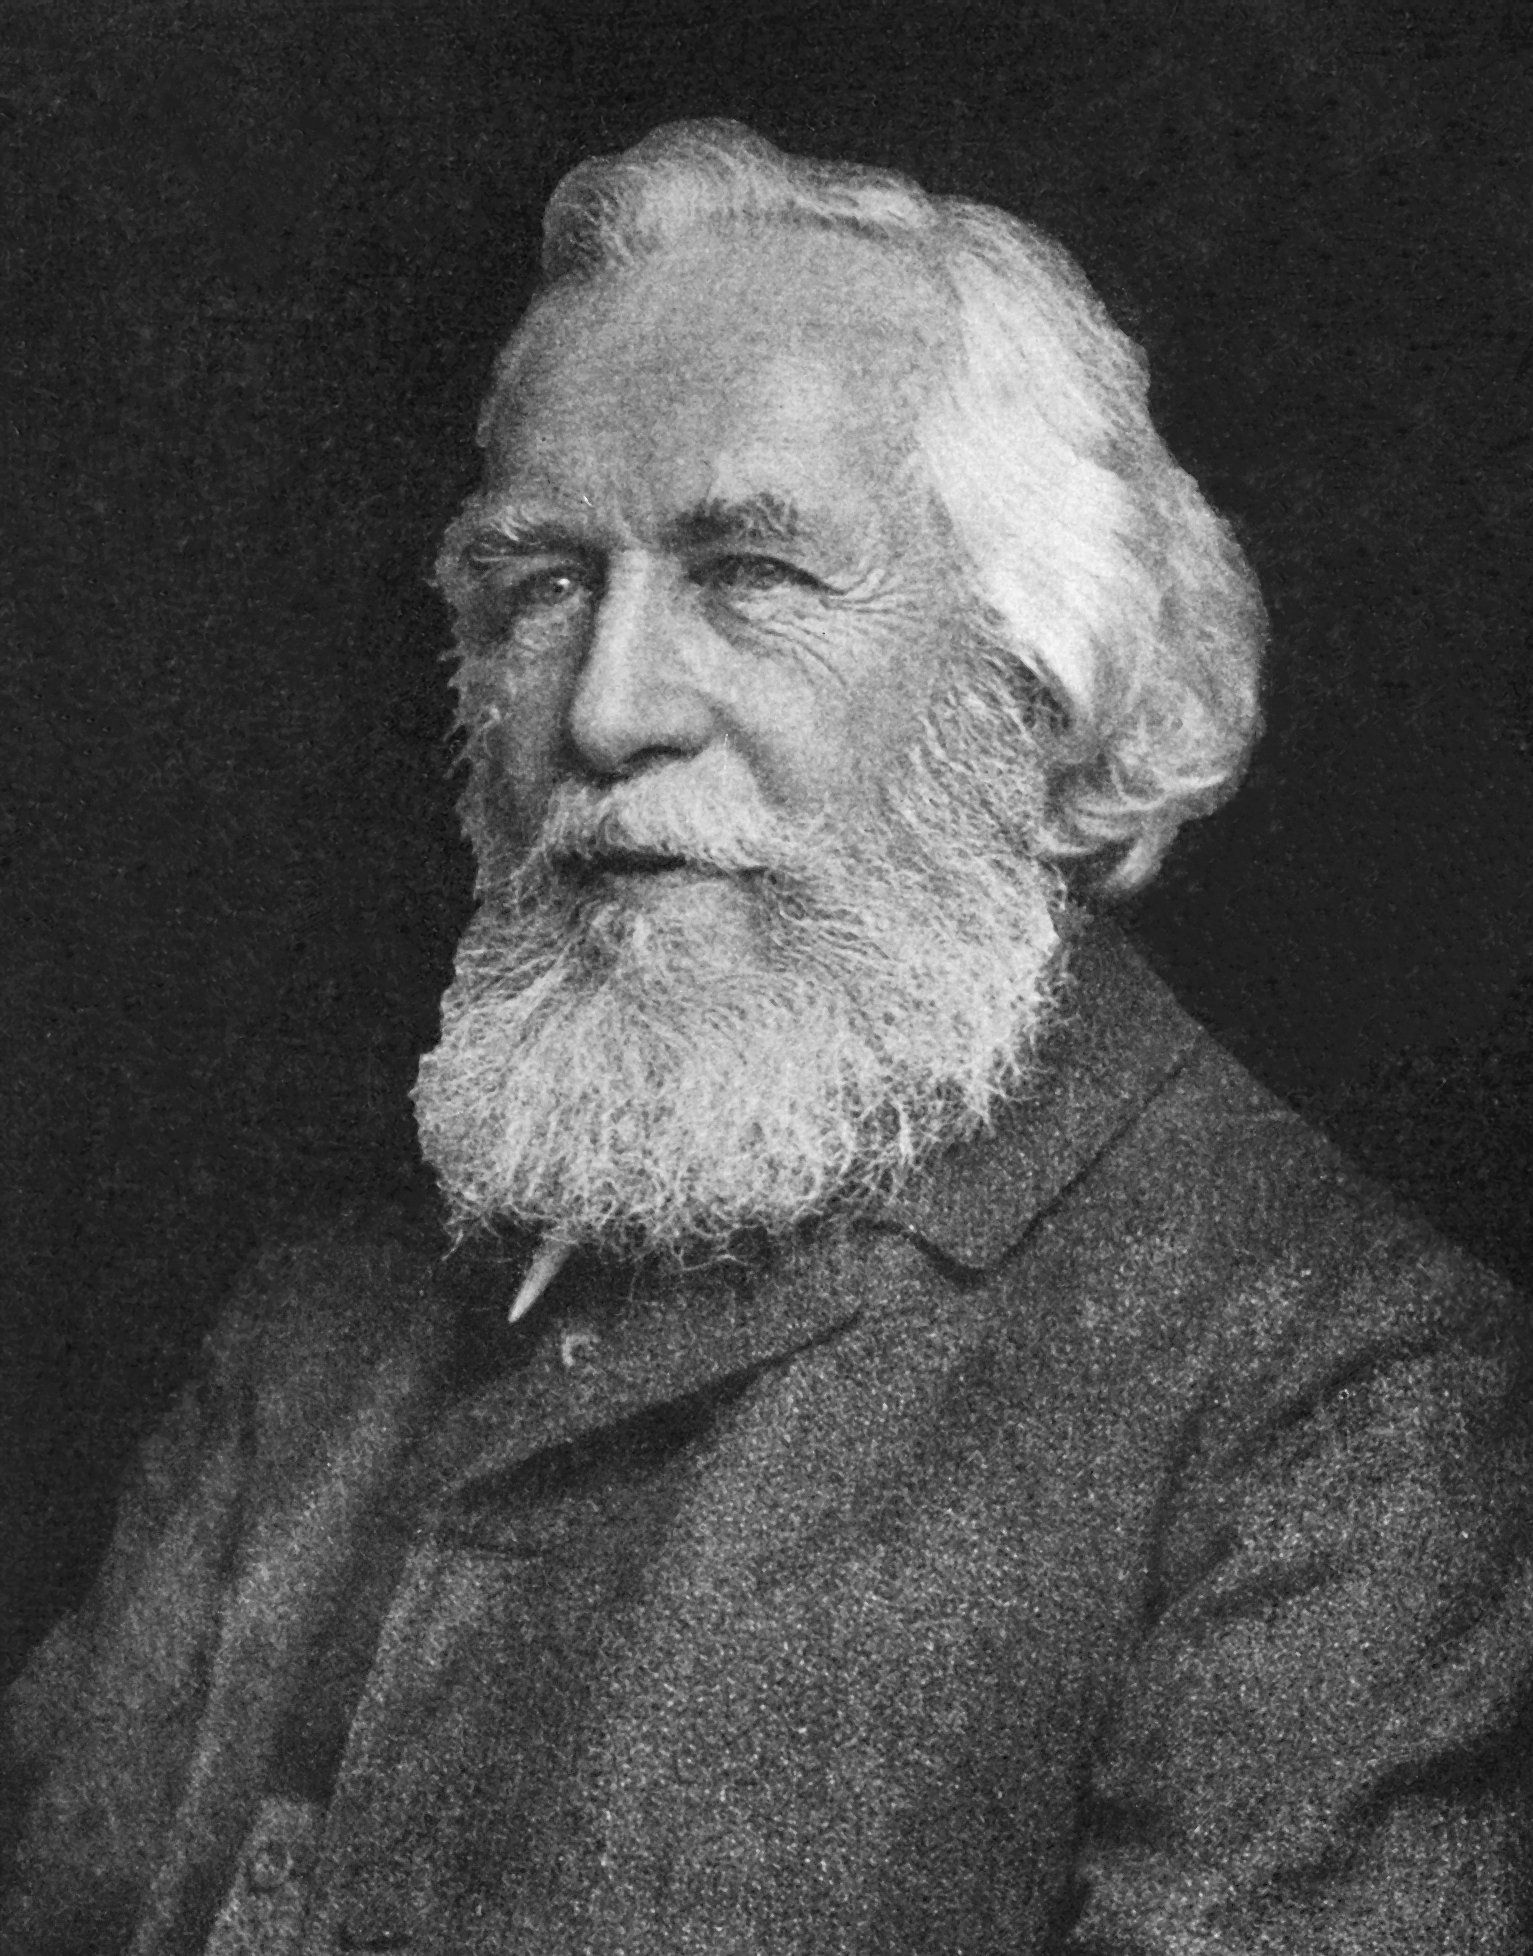 Ernst Haeckel was an eminent German biologist, naturalist, physician and artist who discovered, described and named thousands of new species, mapped a genealogical tree relating all life forms, and coined many terms in biology. (Wiki)